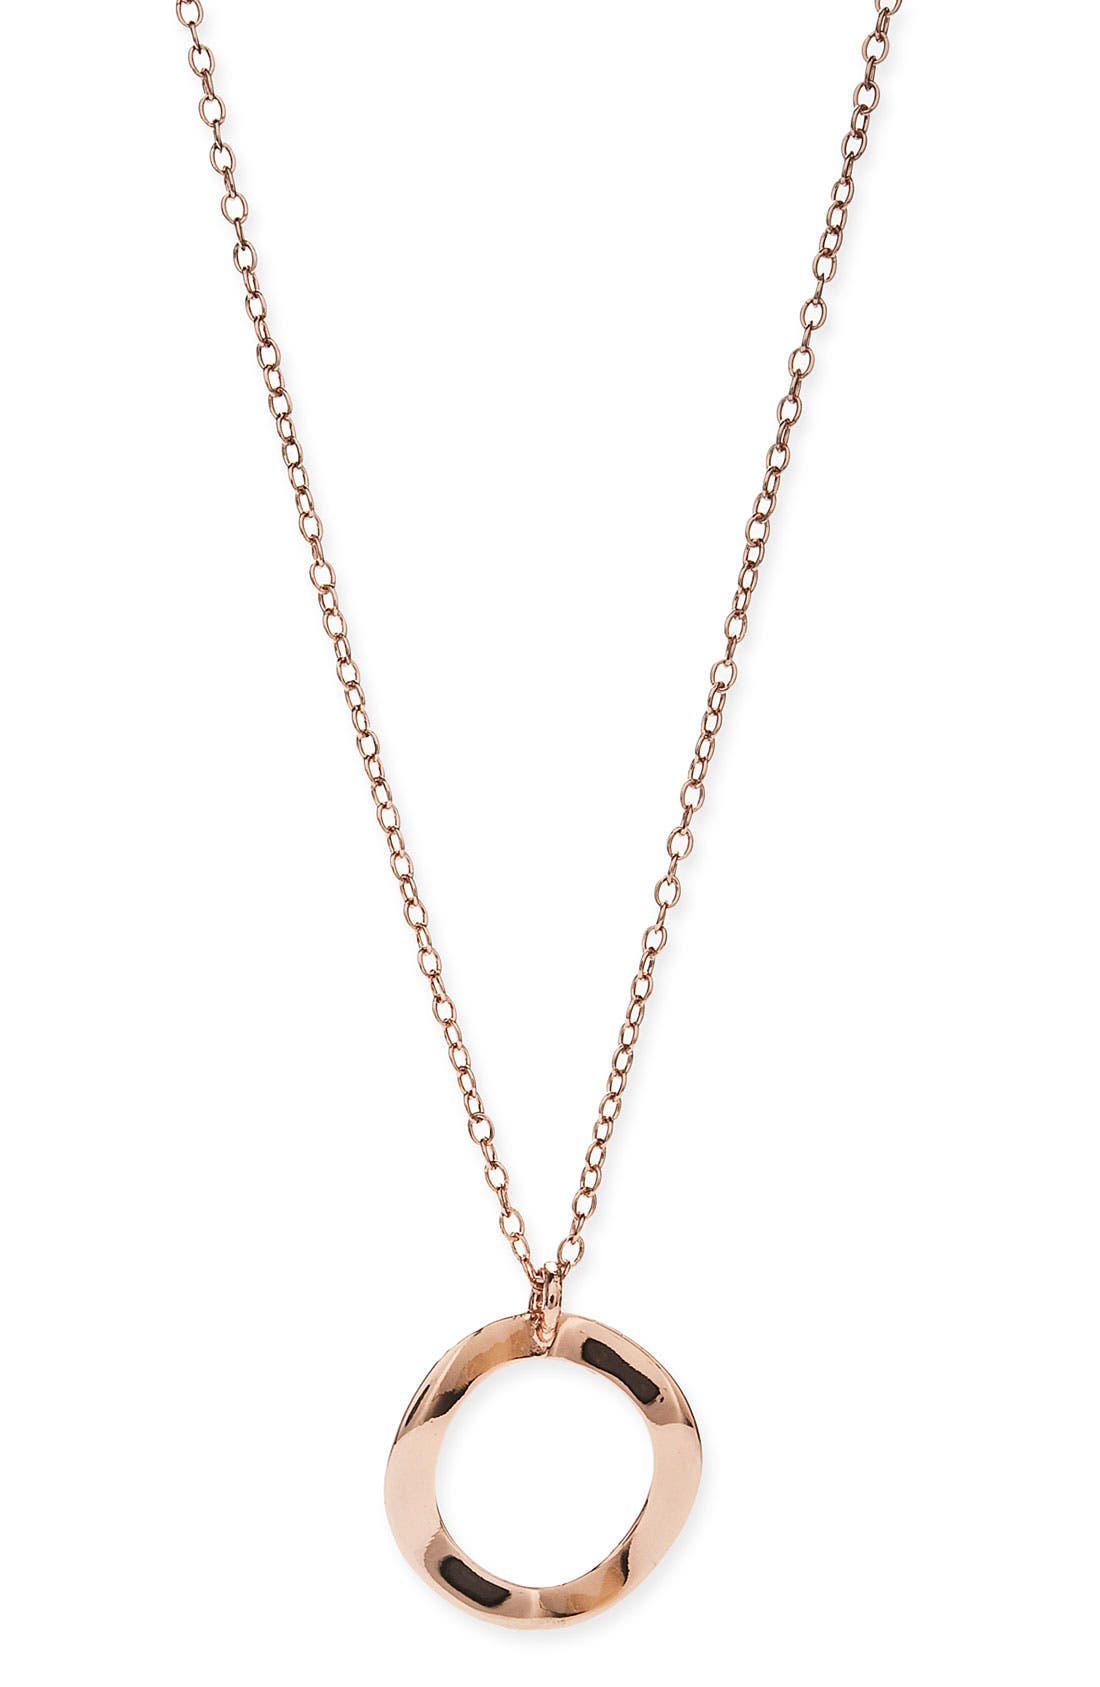 Alternate Image 1 Selected - Ippolita 'Ippolitini Circle of Life' Rosé Charm Necklace